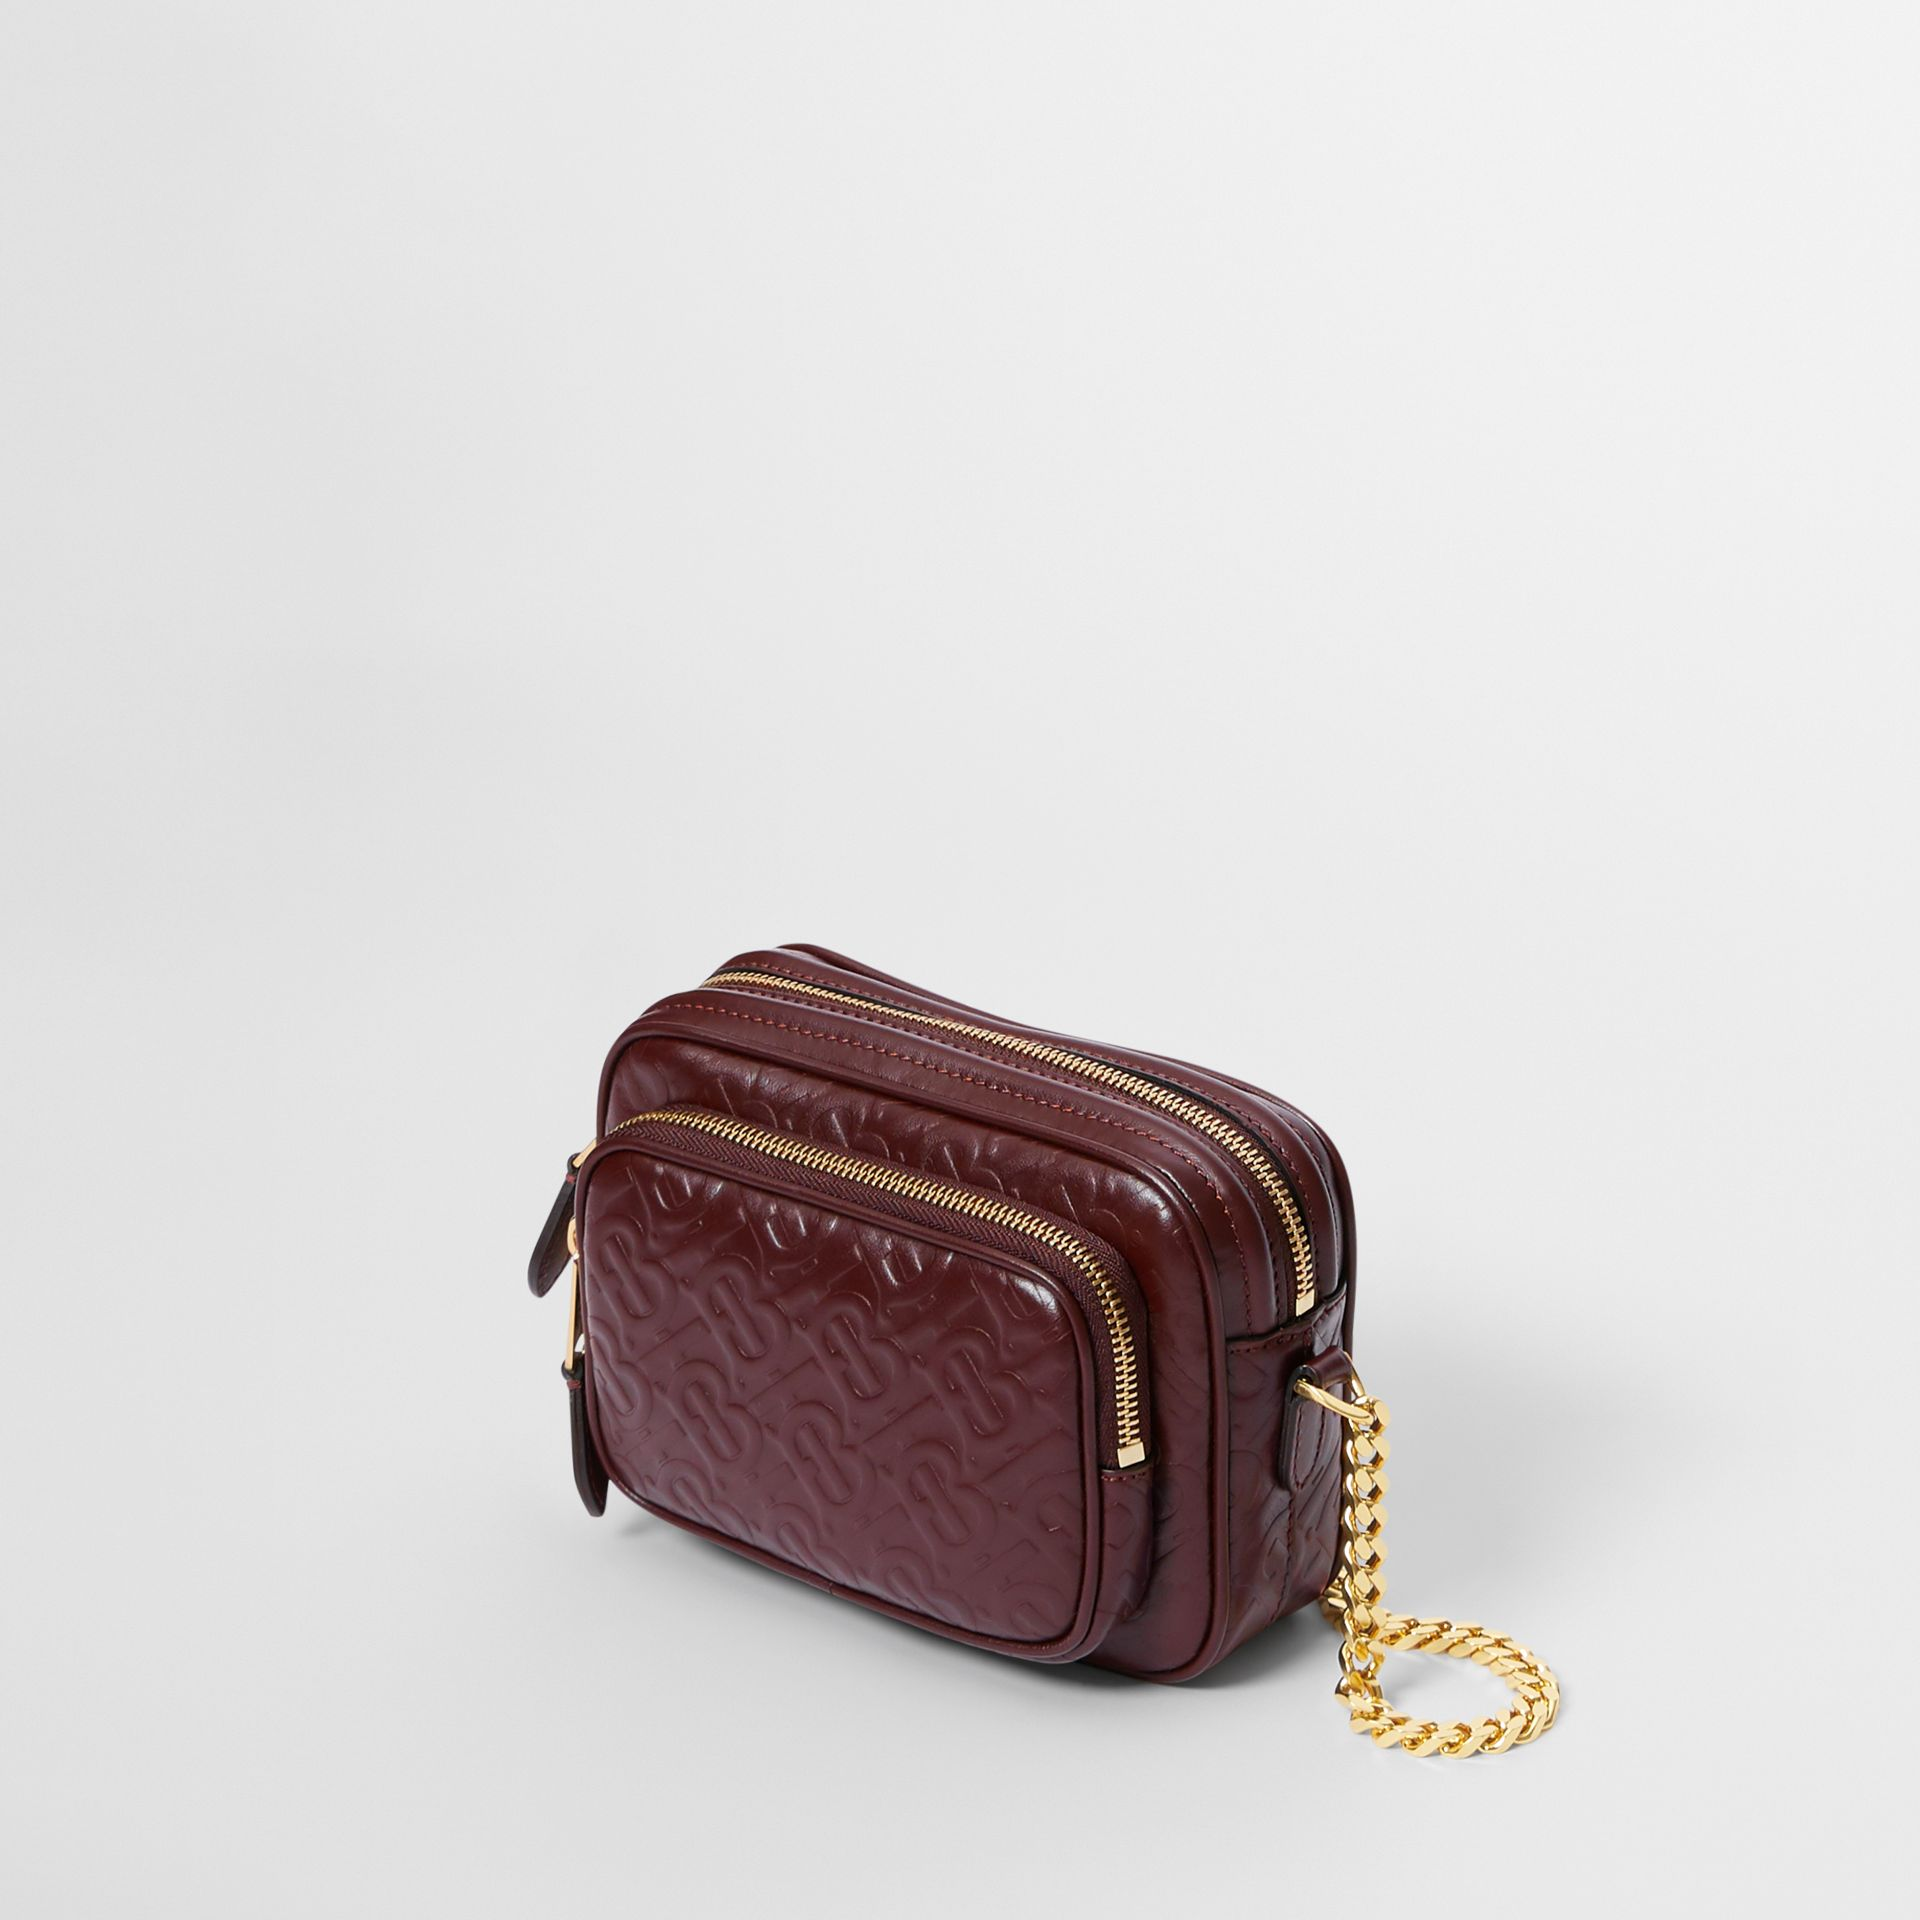 Monogram Leather Camera Bag in Dark Burgundy - Women | Burberry - gallery image 2